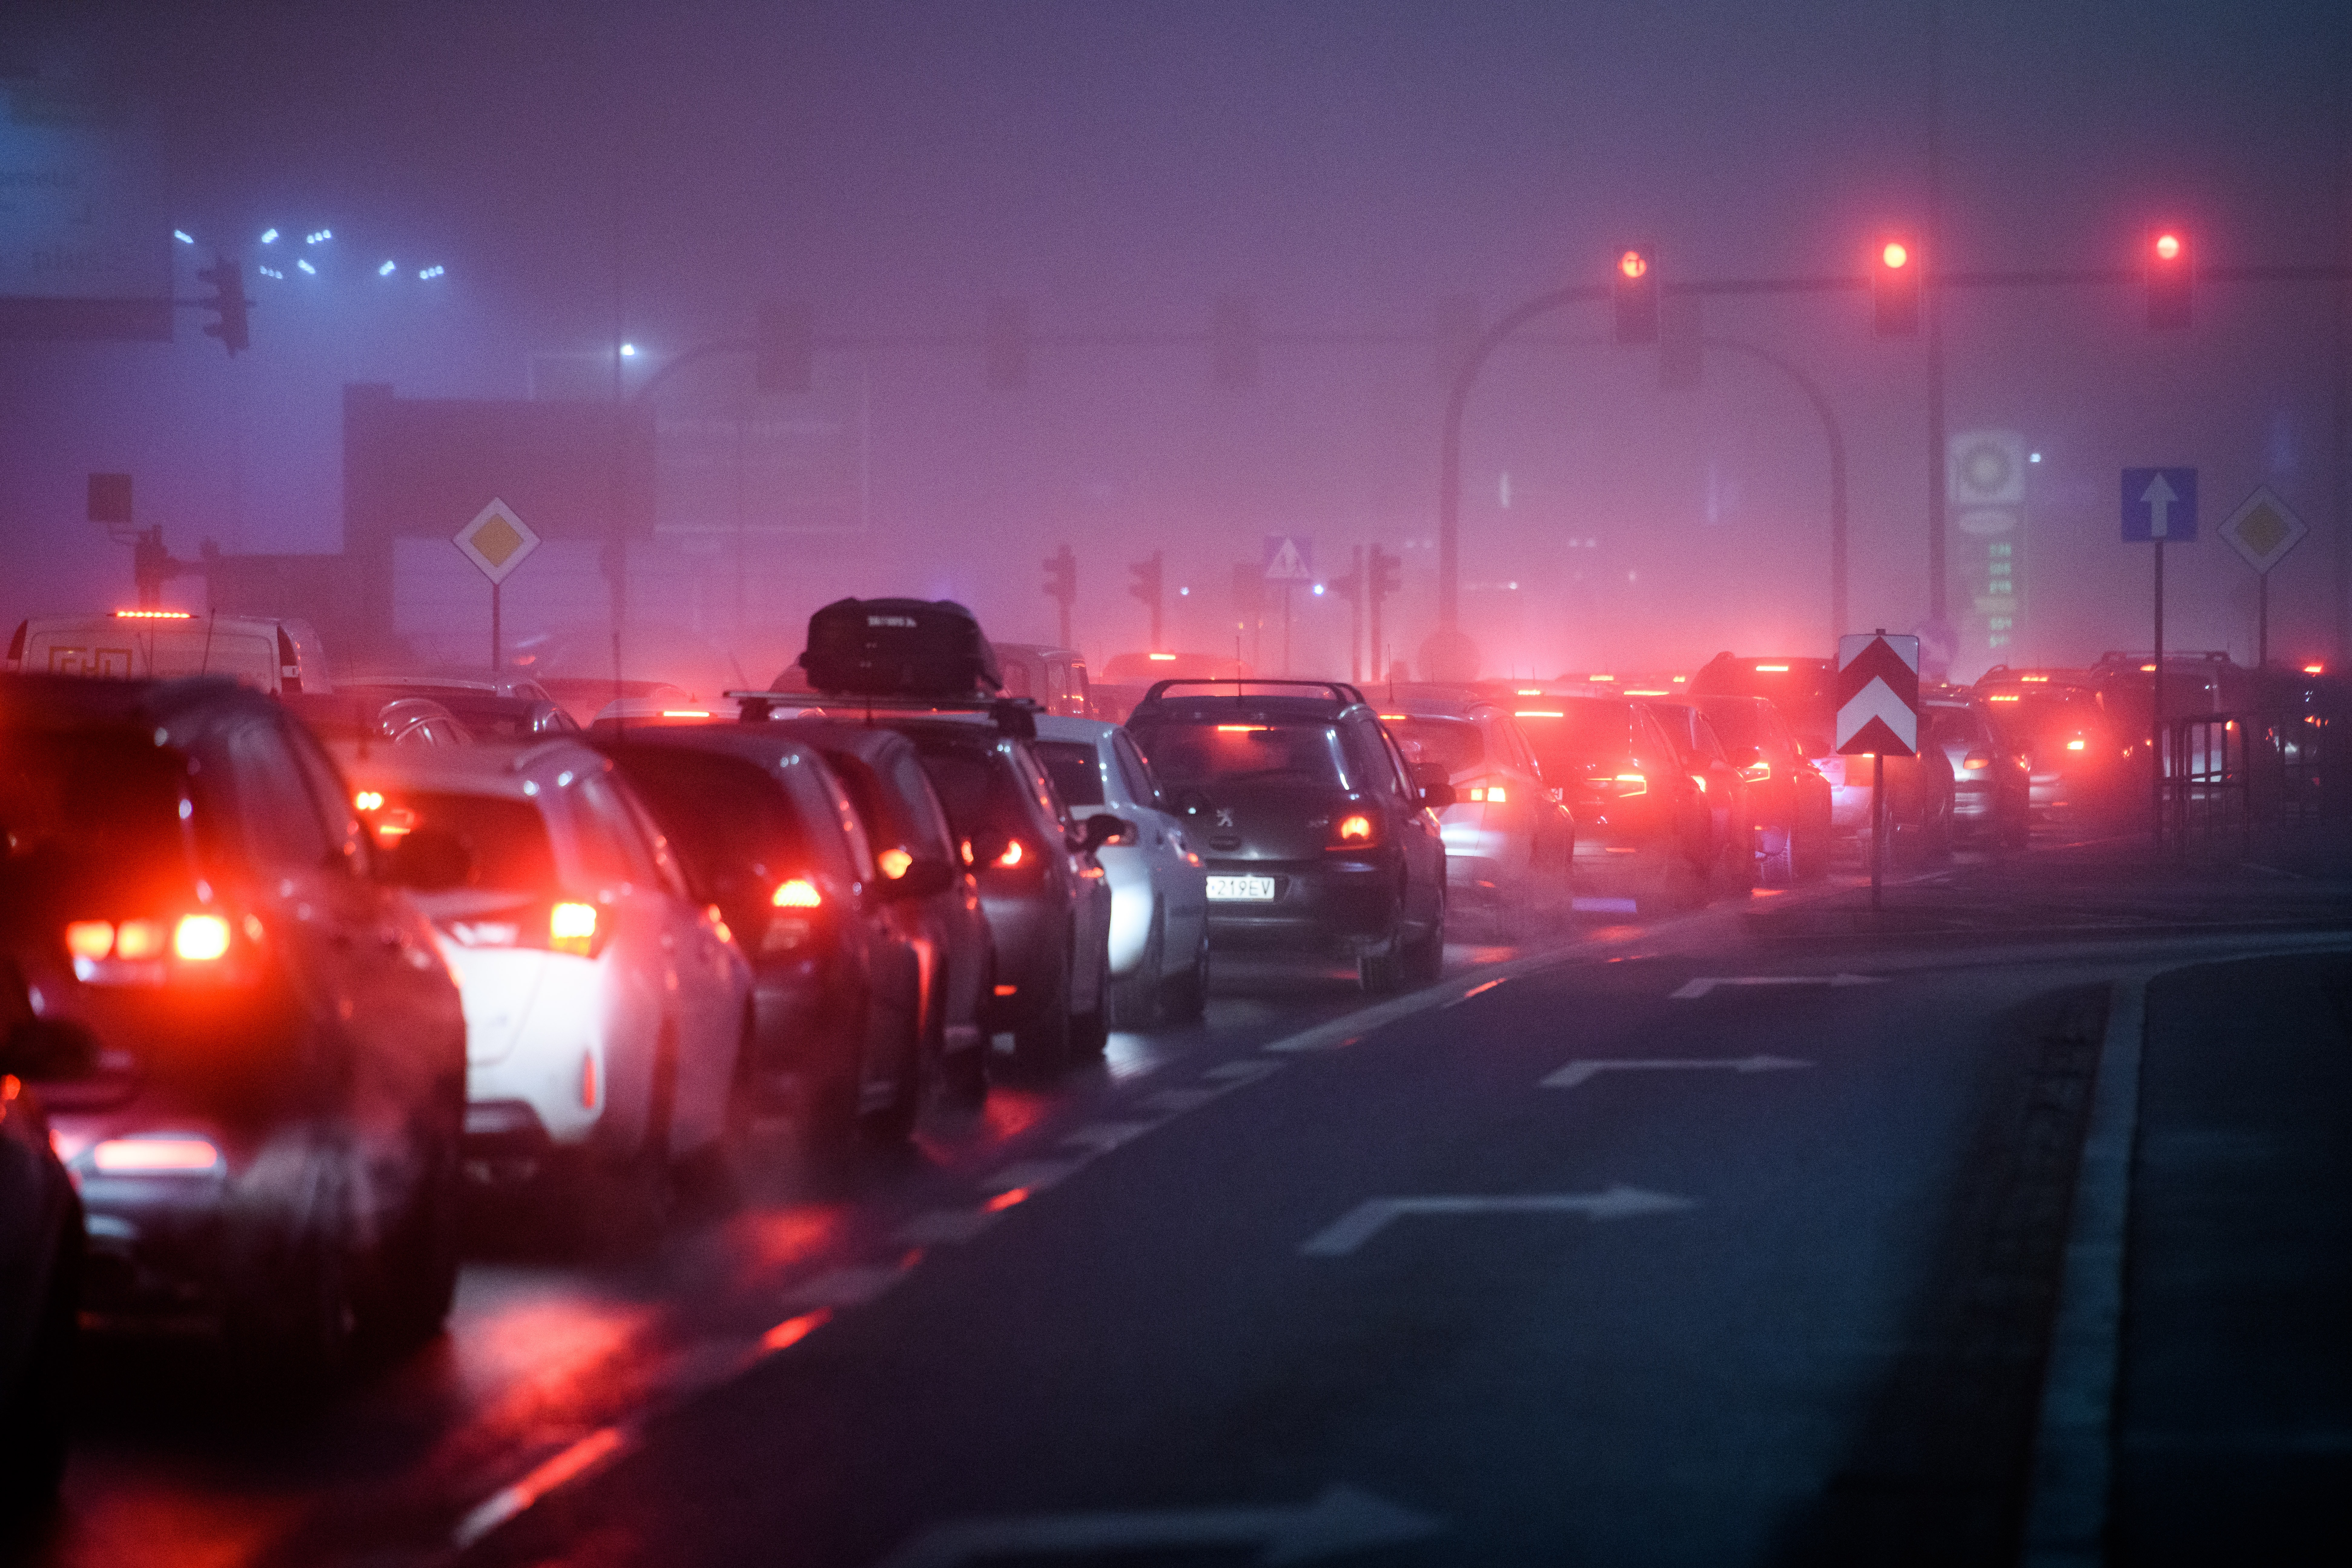 traffic jam at night with exhaust fumes